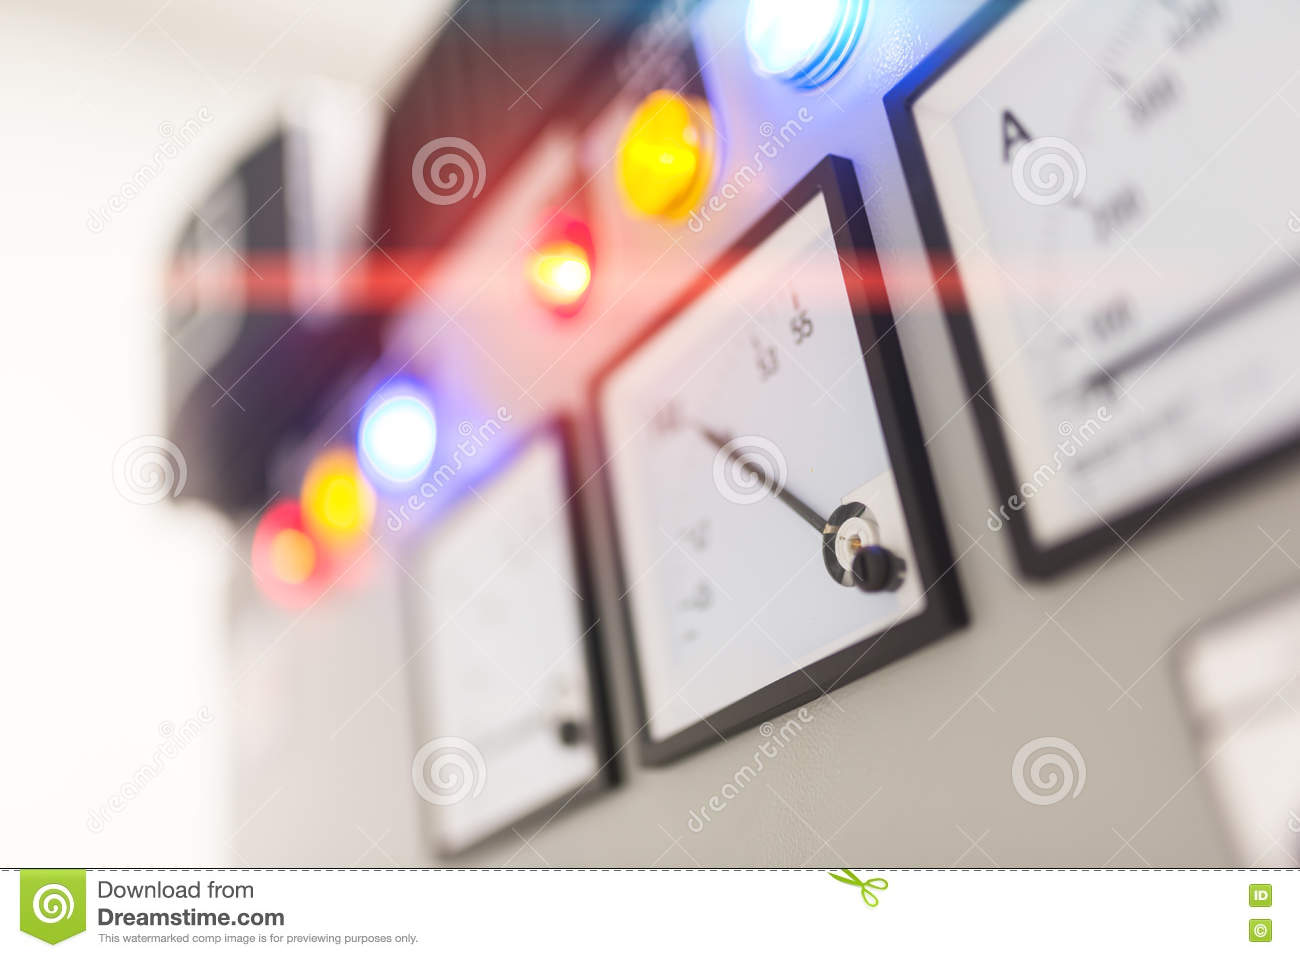 Outdoor Fuse Box Wiring Schematics Diagram Waterproof Electric In Soft Light Stock Photo Image Of Line